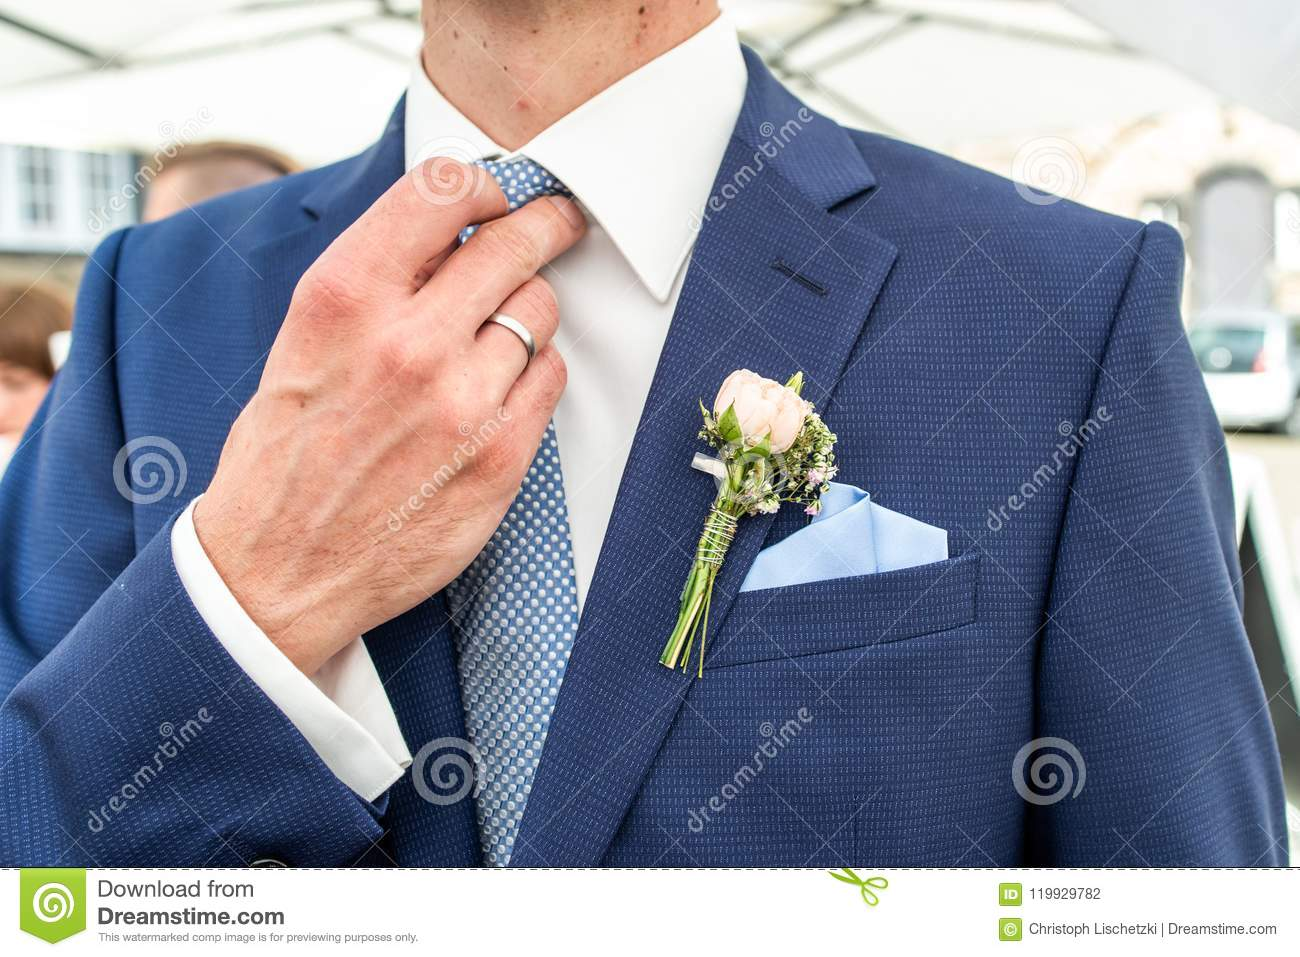 2019 year looks- How to boutonniere wear on a shirt